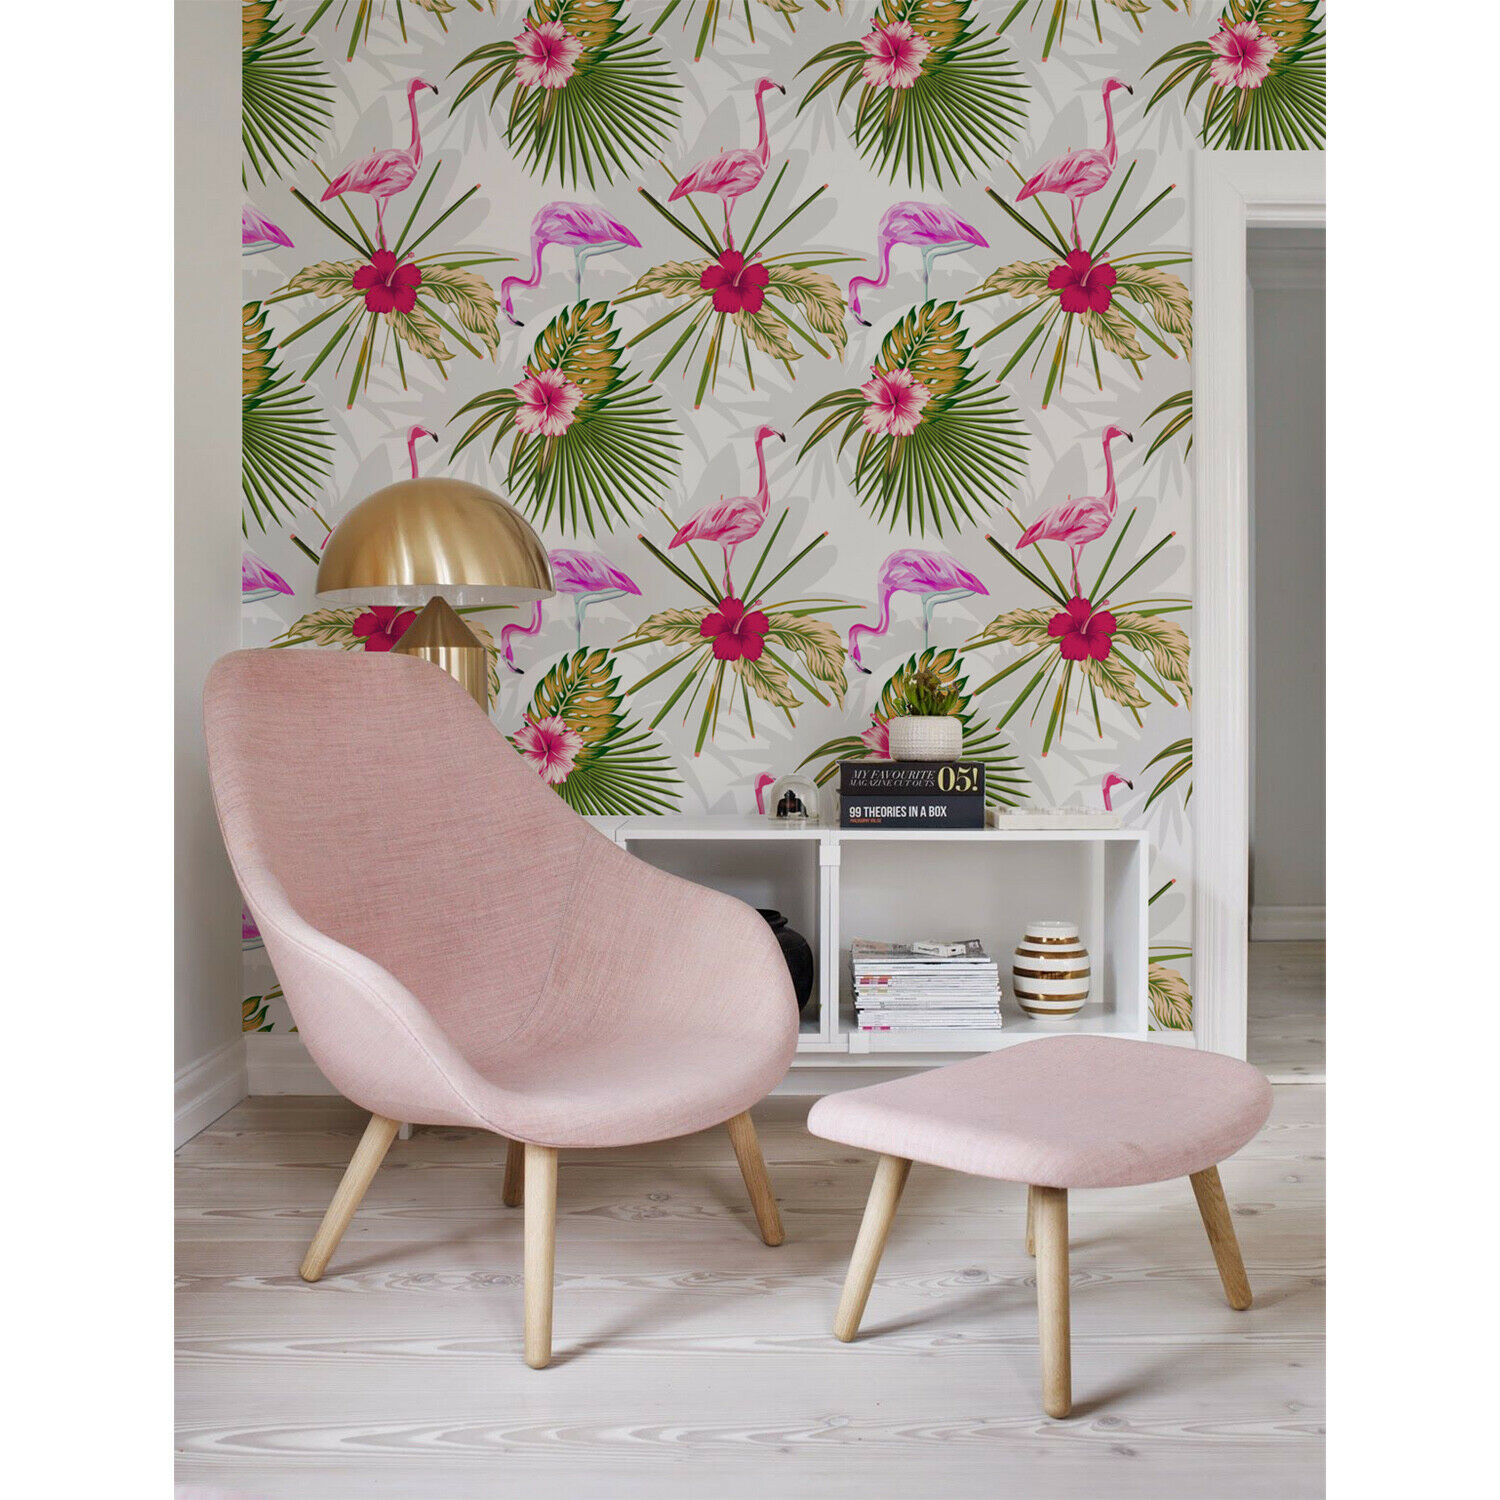 Non-Woven wallpaper Home Flamingo Miami Exotic Leaves Flowers and Birds Pattern